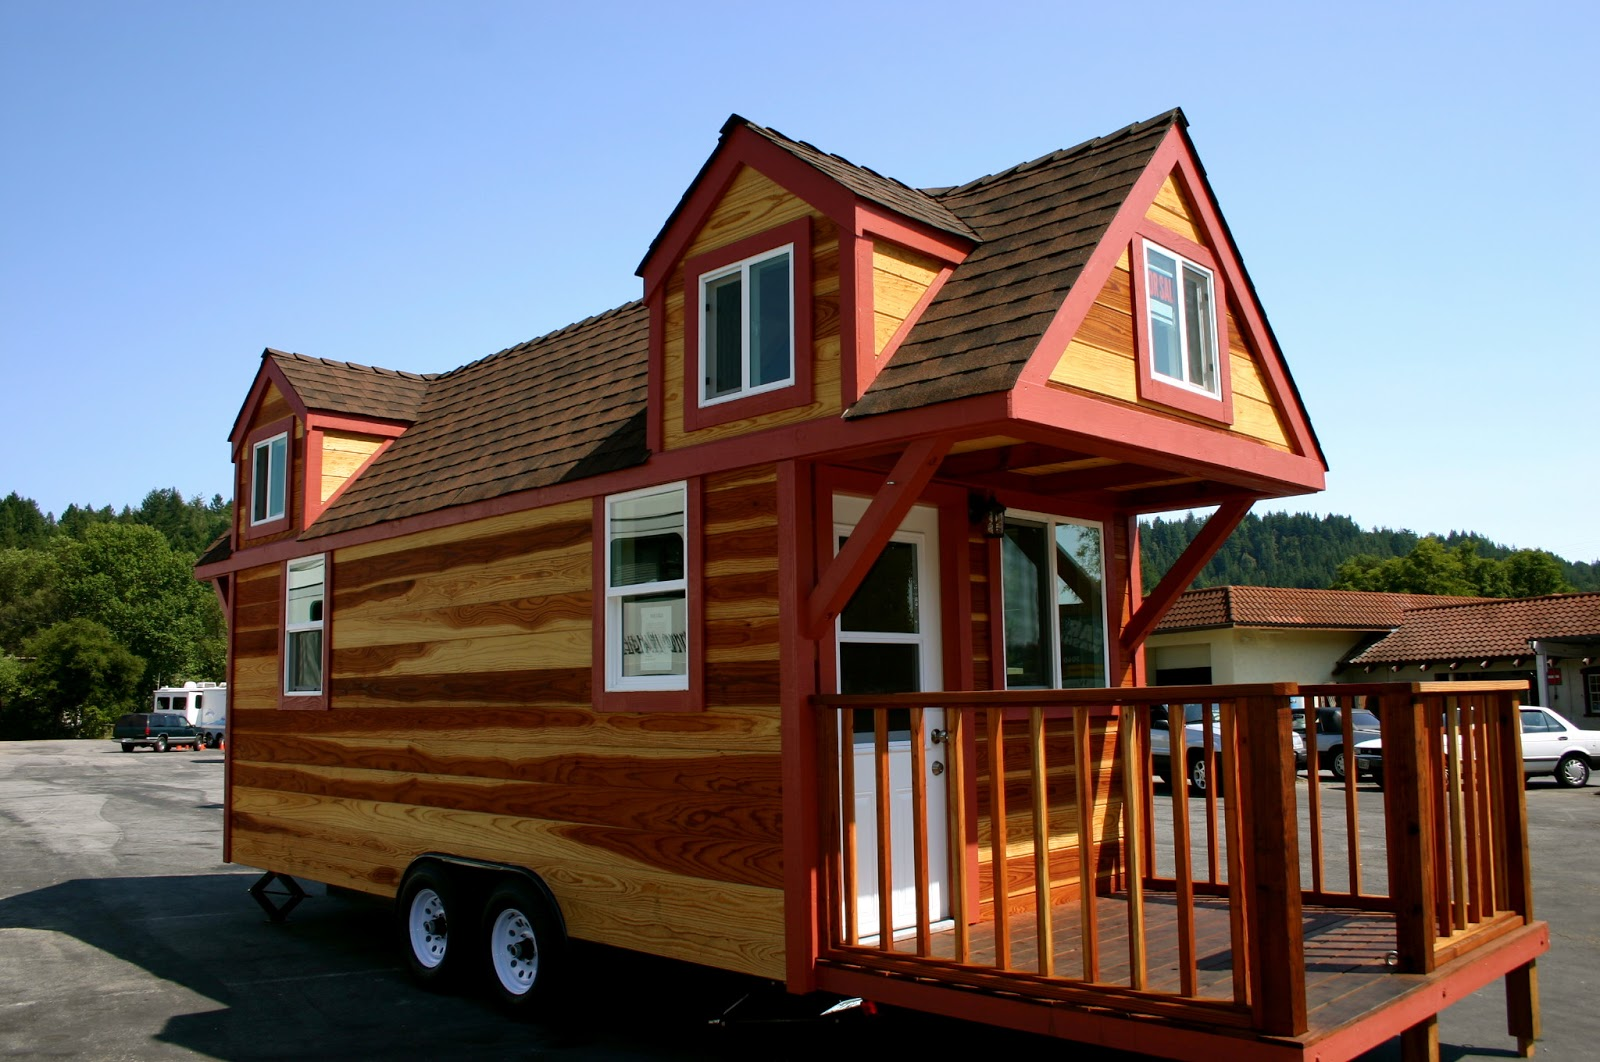 Redwood Tinyhouse Tiny House Giant Journey